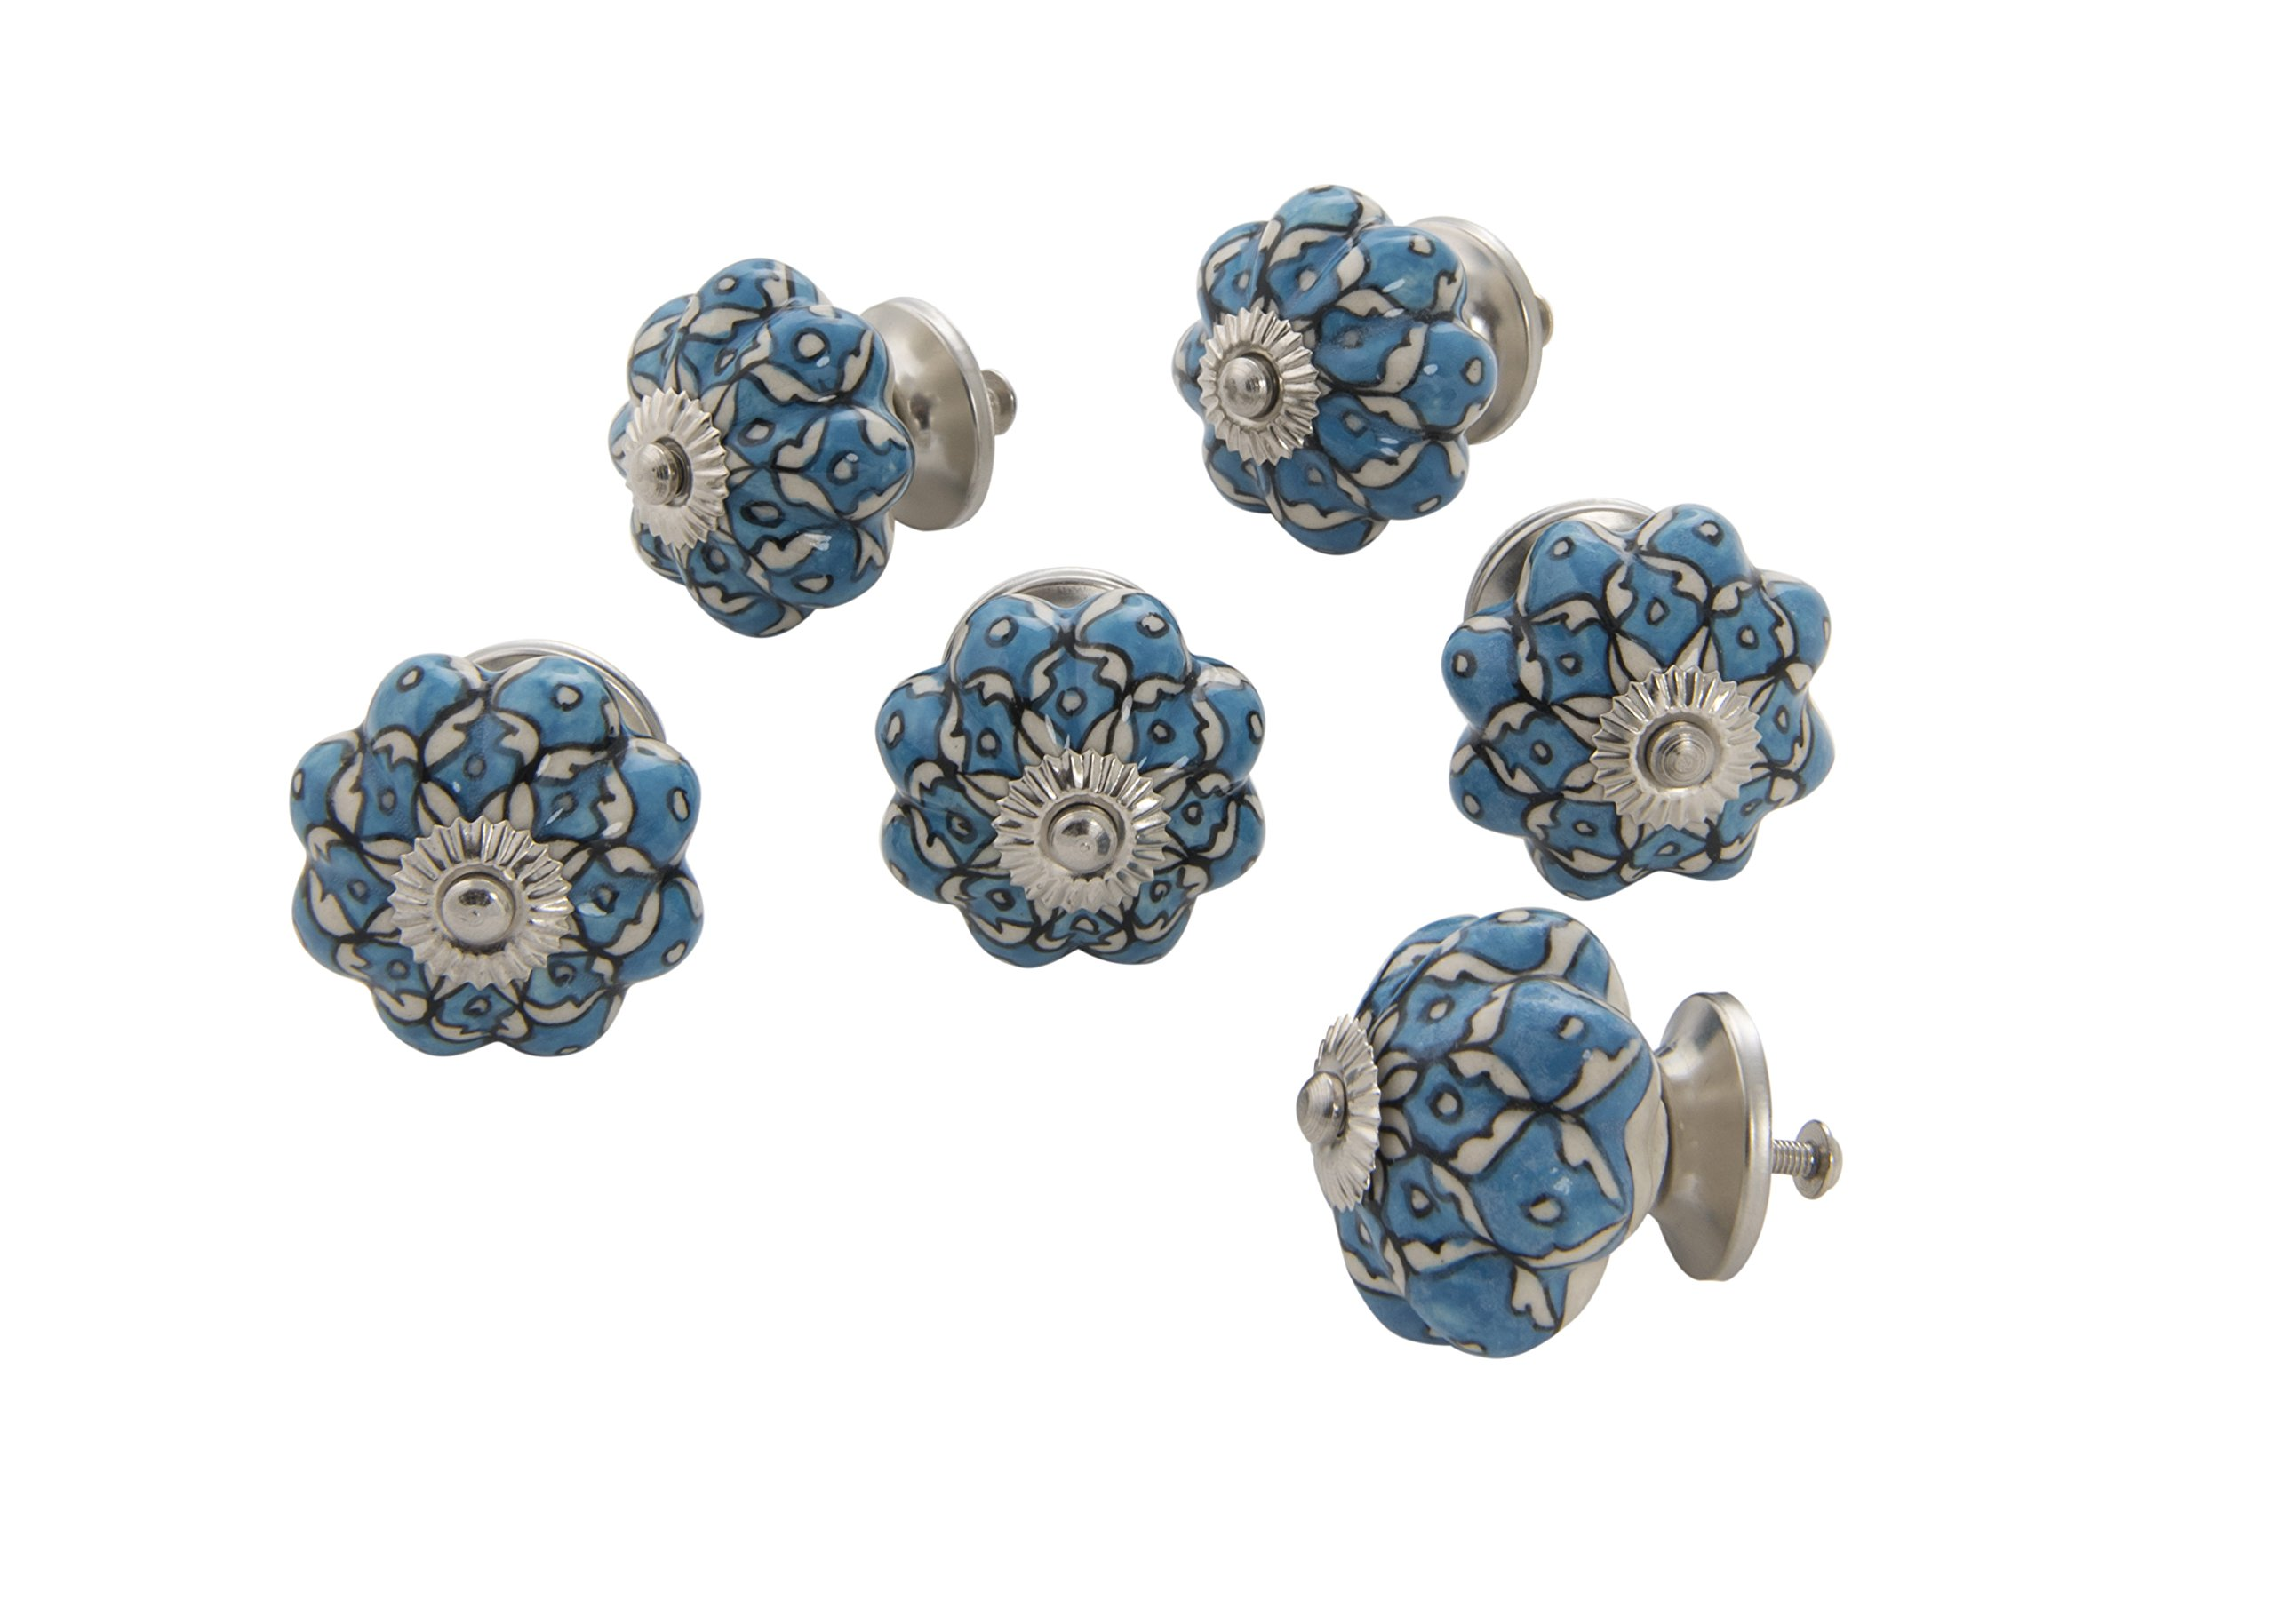 Dritz Home 47047A Ceramic Persian Floral Scallop Knob Handcrafted Knobs for Cabinets & Drawers